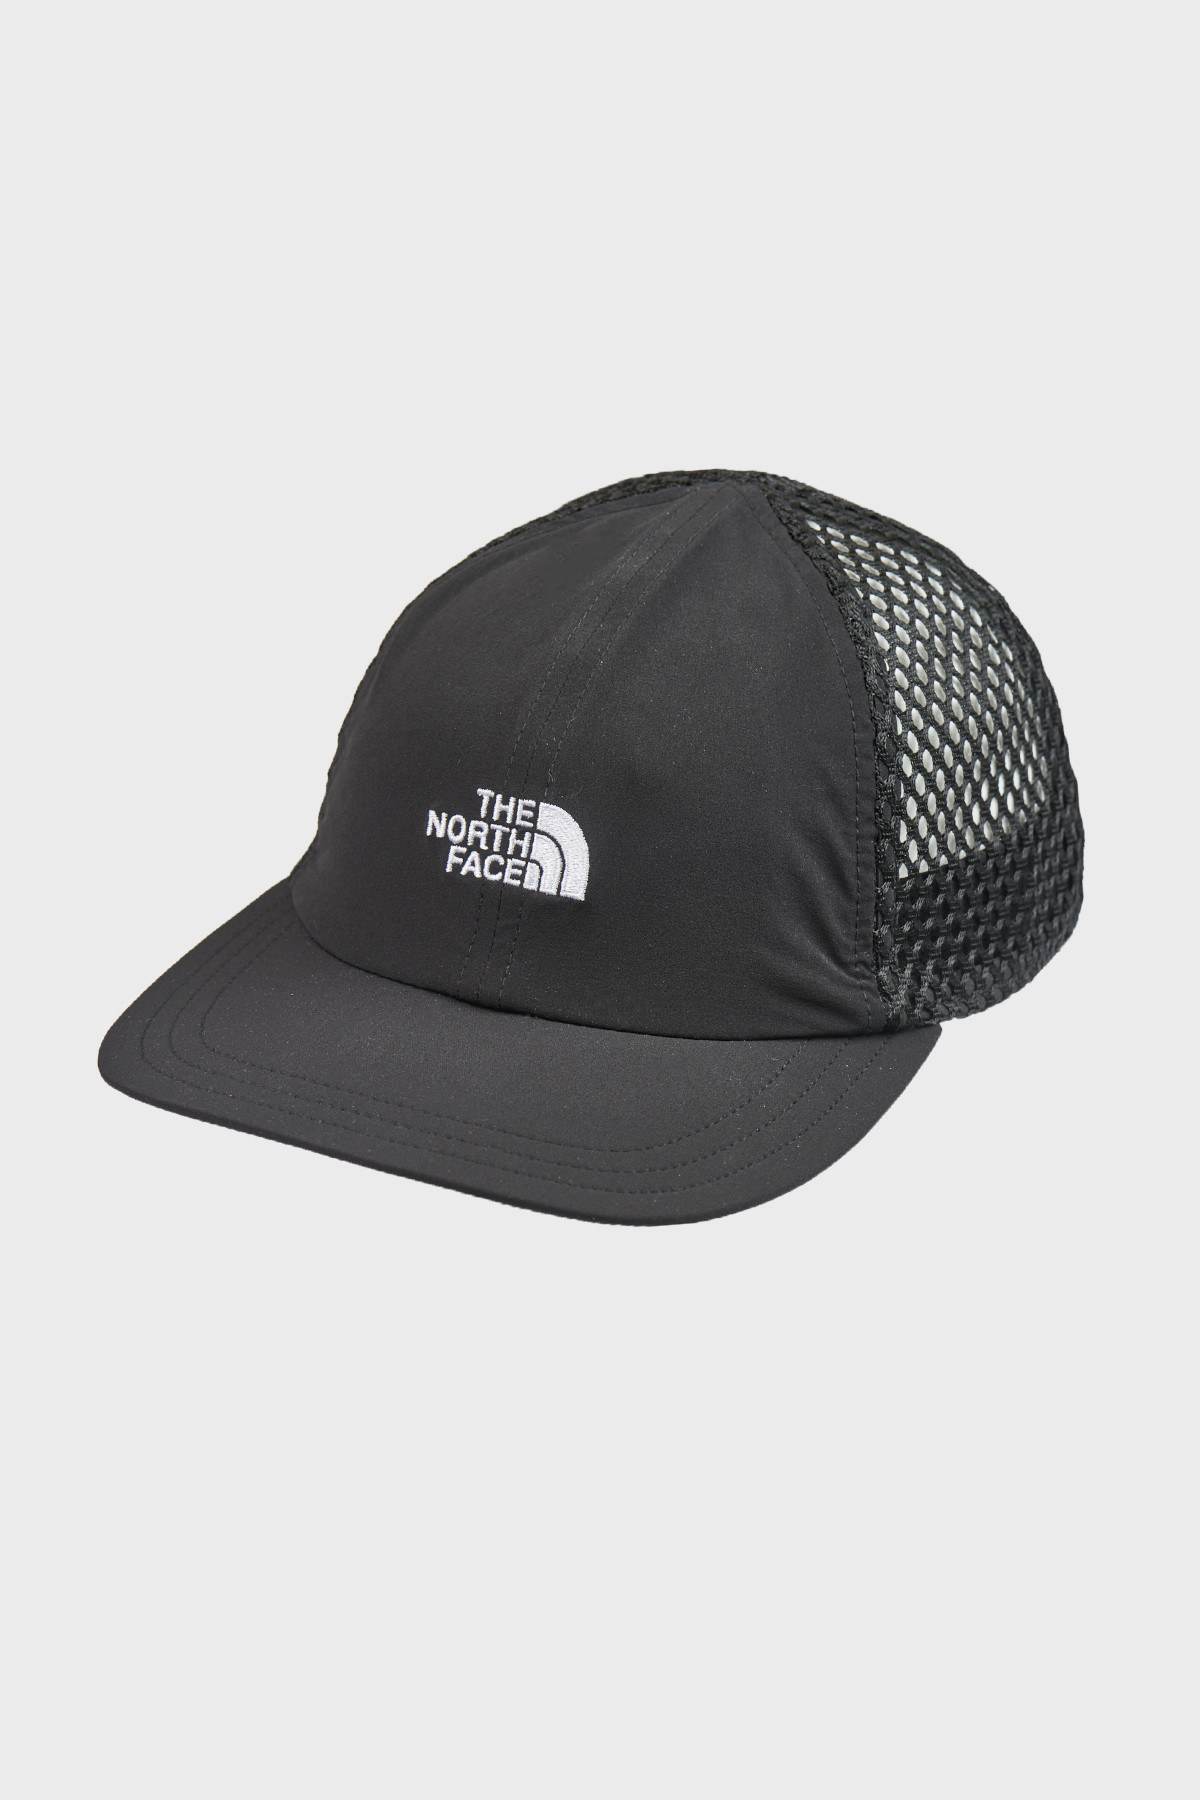 THE NORTH FACE - RUNNER MESH CAP - BLACK